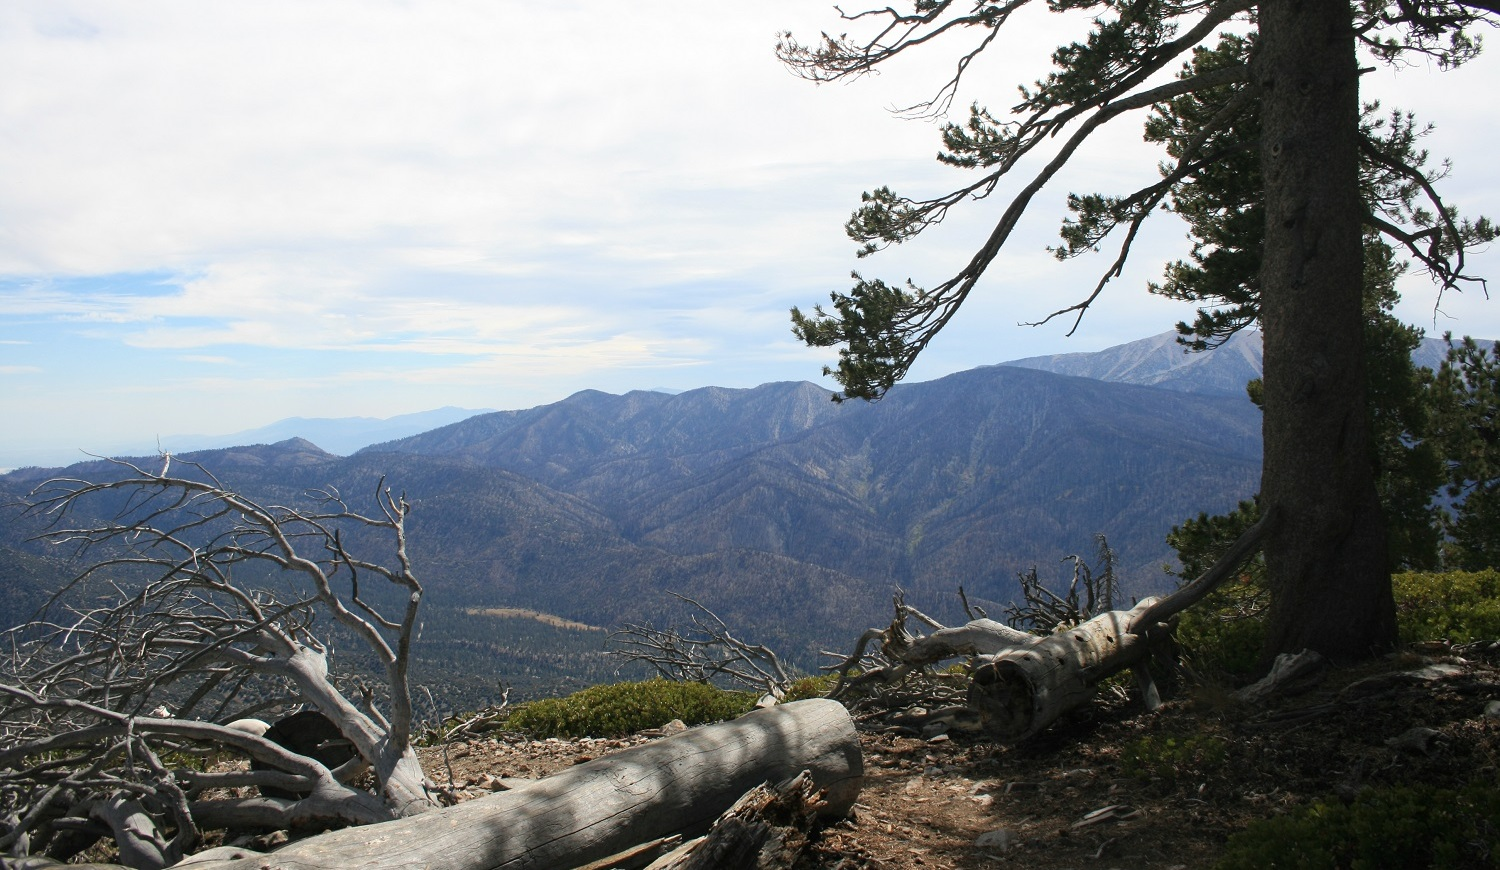 View from Sugarloaf Mountain, San Bernardino National Forest